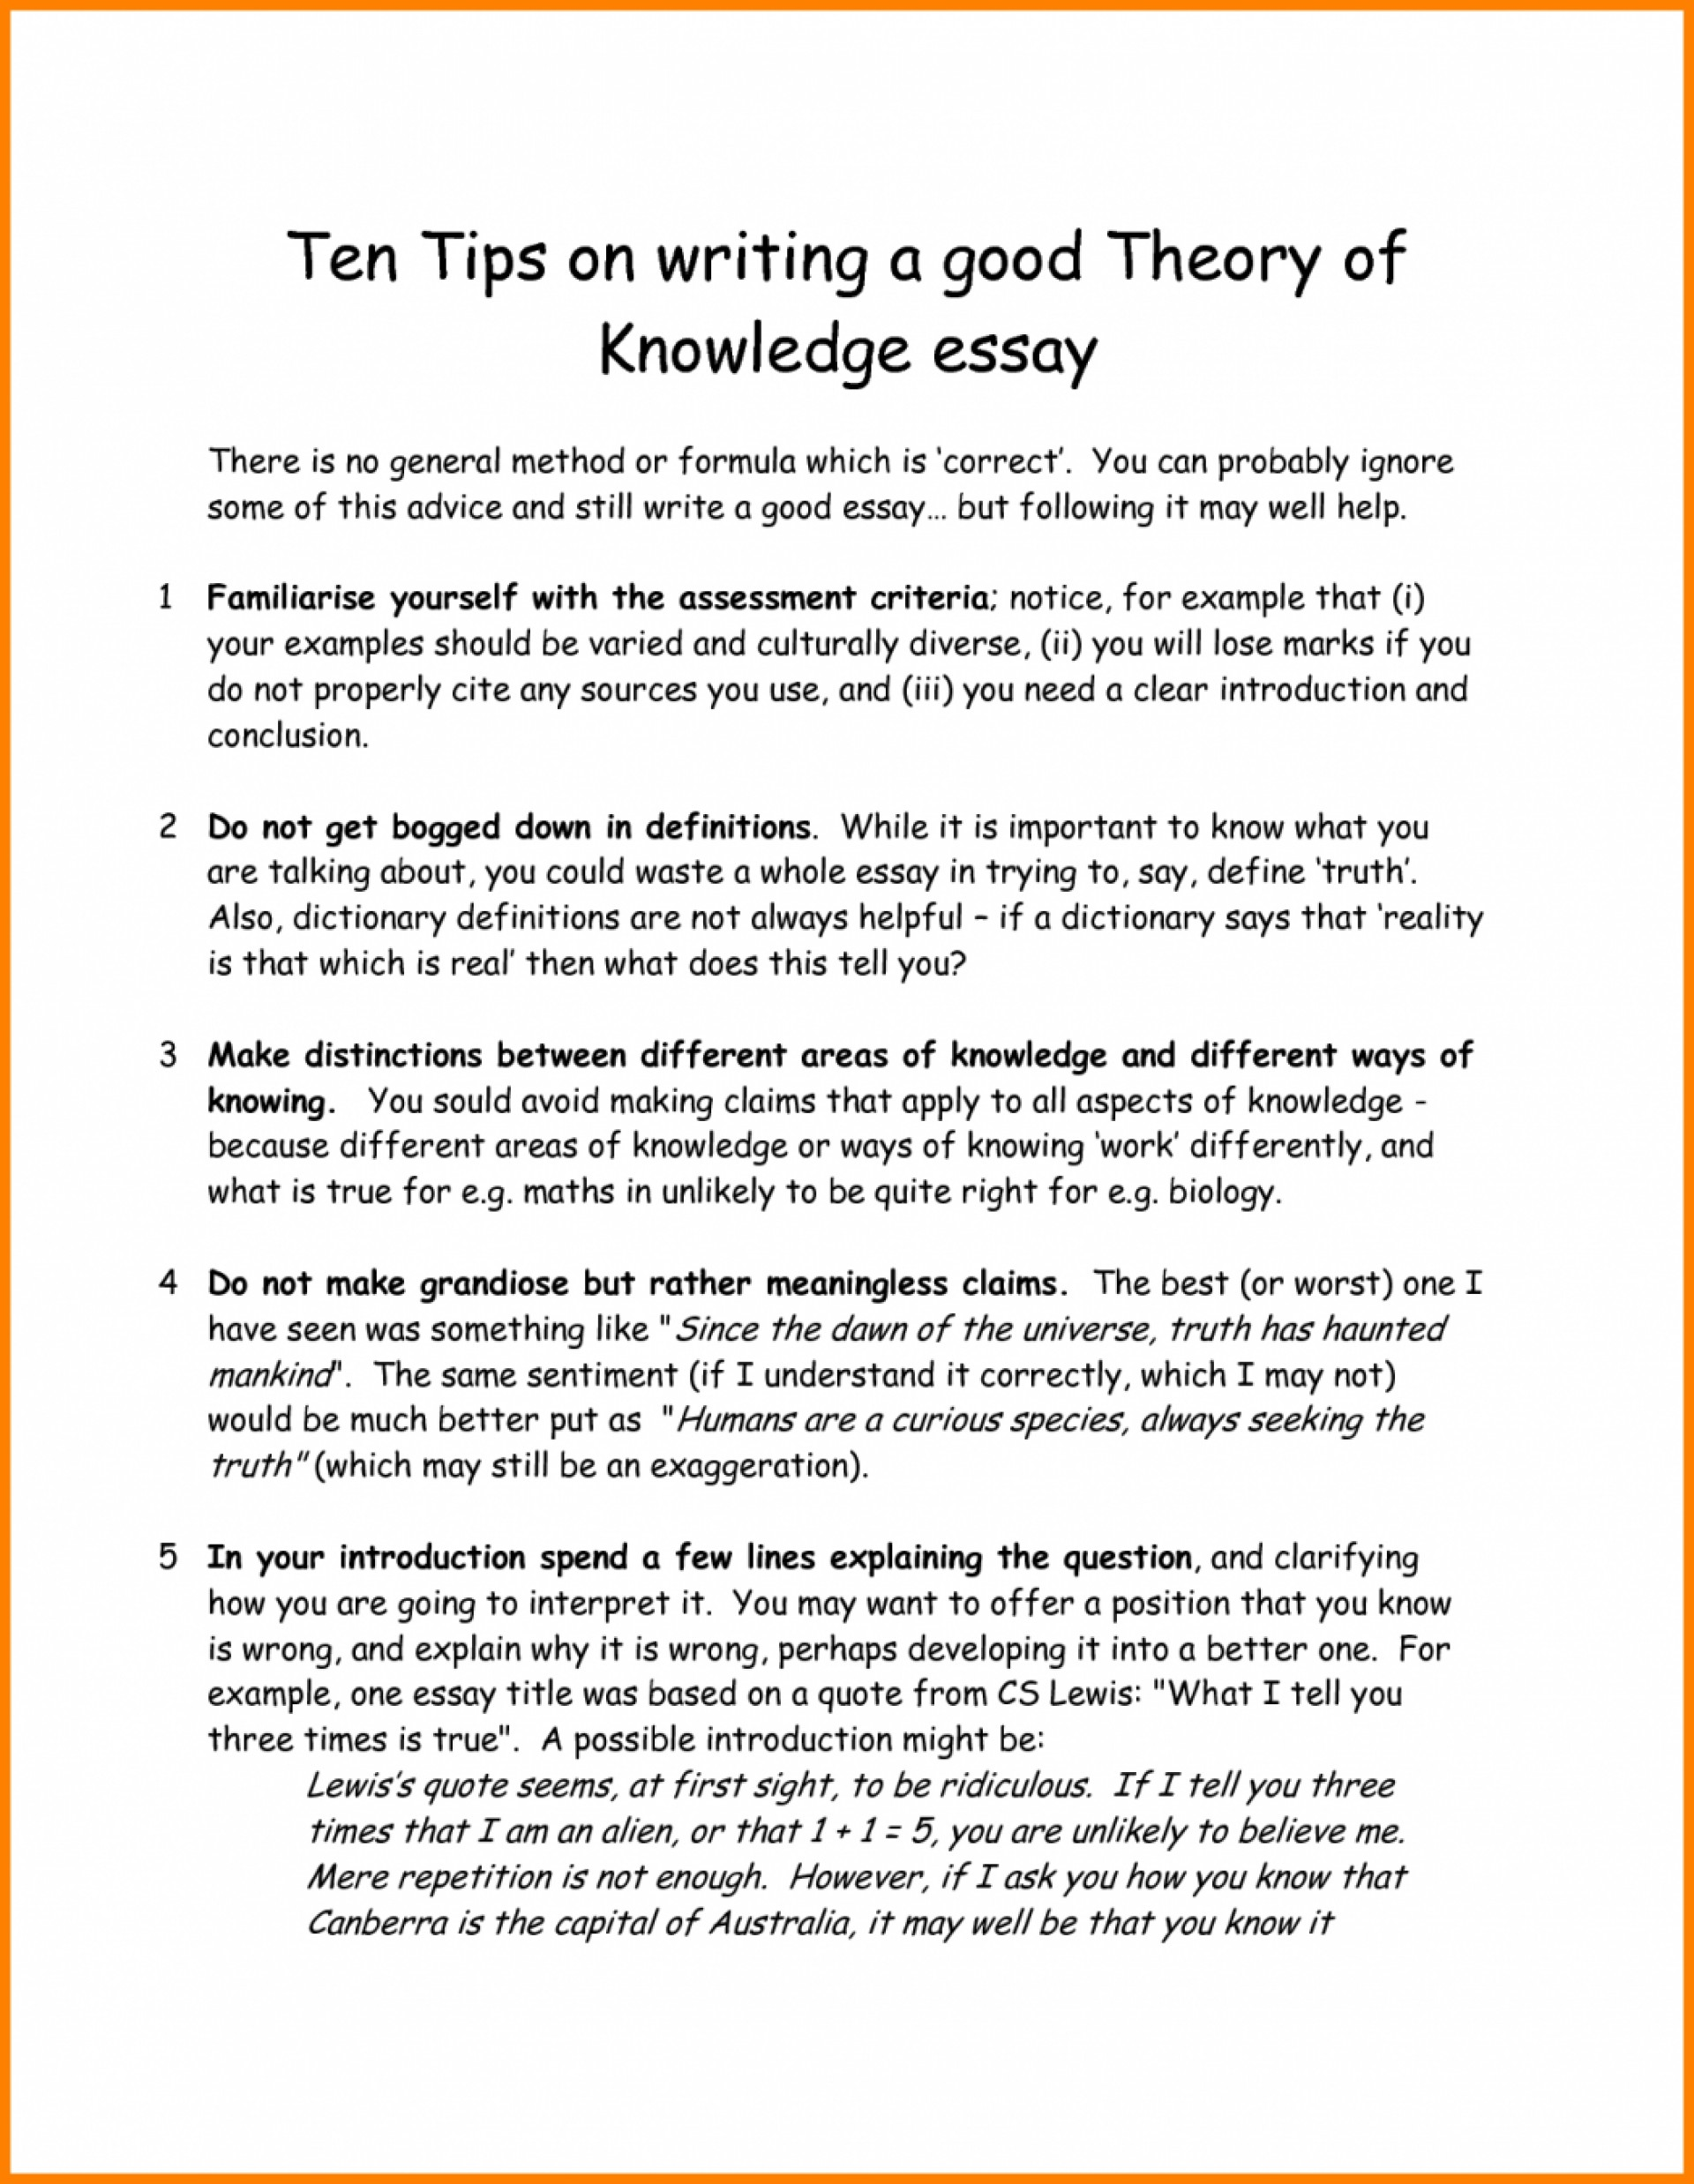 019 Good Ways To Startssaynglish The Paragraph How An Observationxamples Off About Yourself Ledger Pa Informative Writing Analysis Conclusion Academic Applicationxpository 1048x1352 Unusual Start Essay A History Sentence For Write Expository 1920